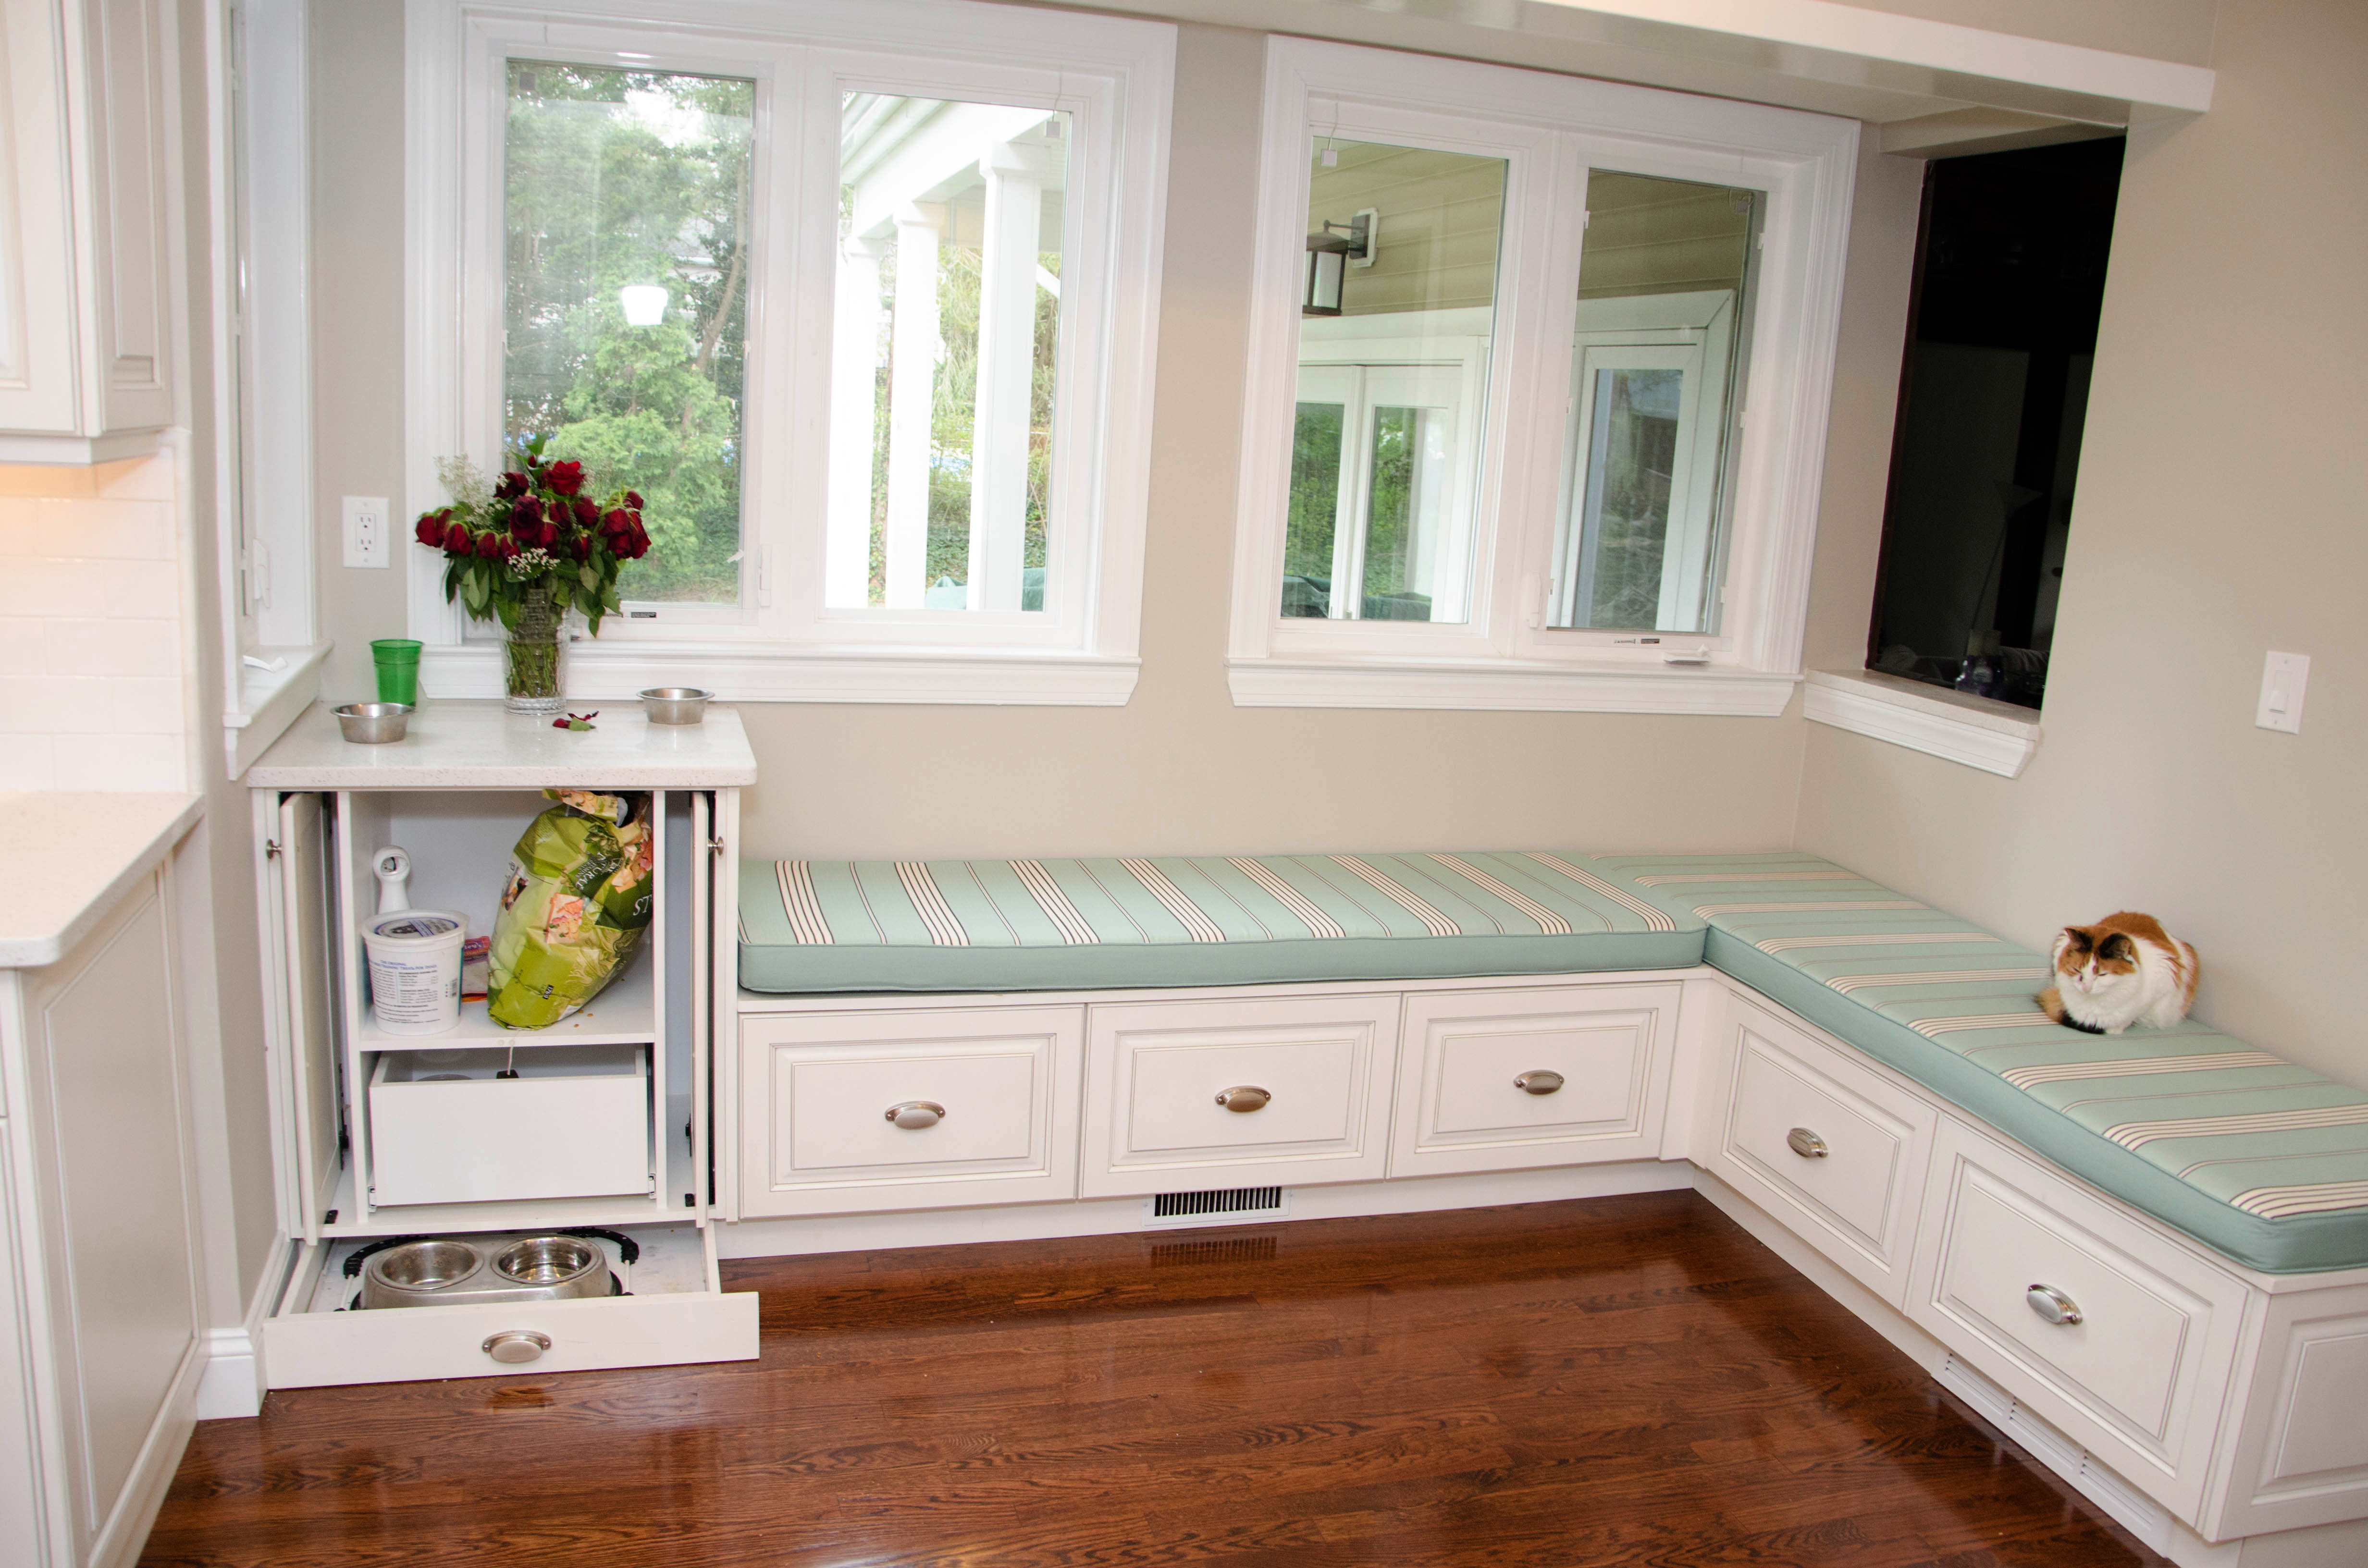 Wrap Around Kitchen Cabinets Light And Spacious Kitchen Brielle Nj By Design Line Kitchens